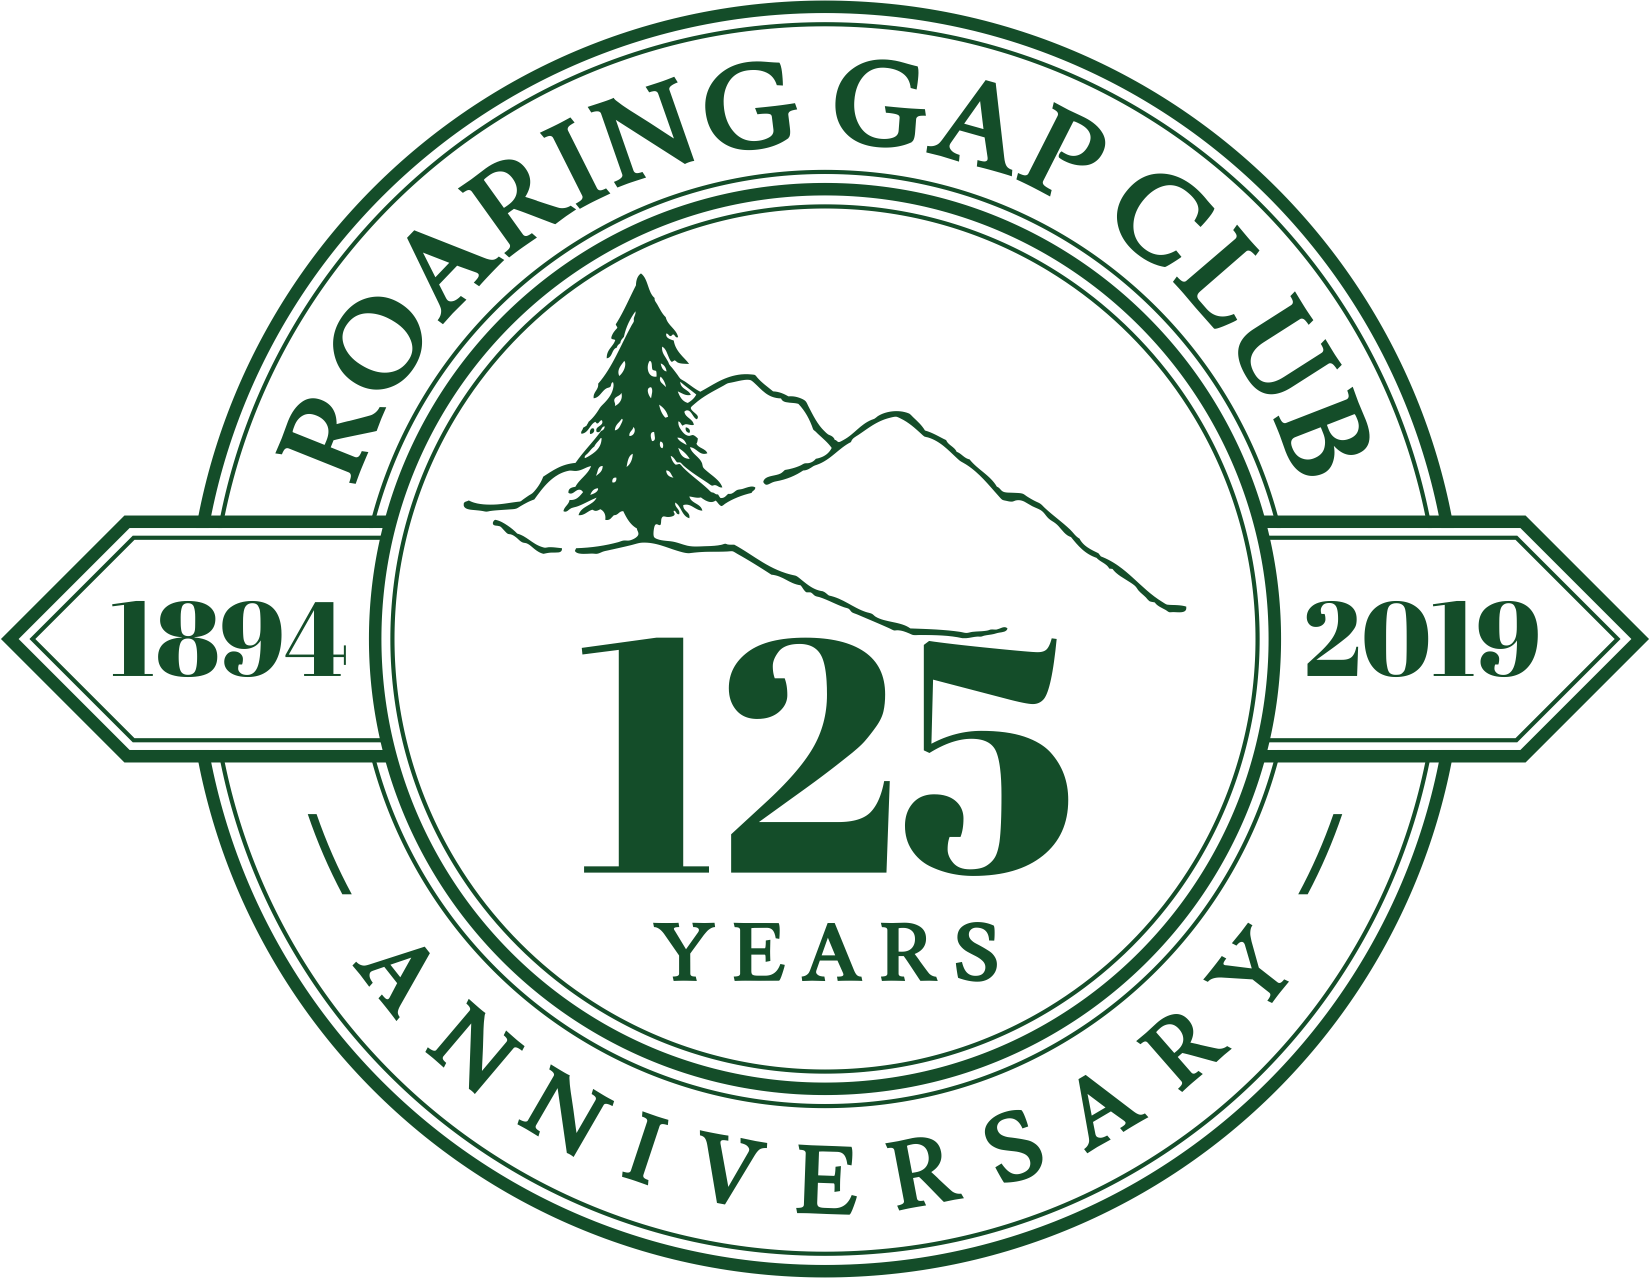 Create a Logo Design for a Country Club's 125 Anniversary